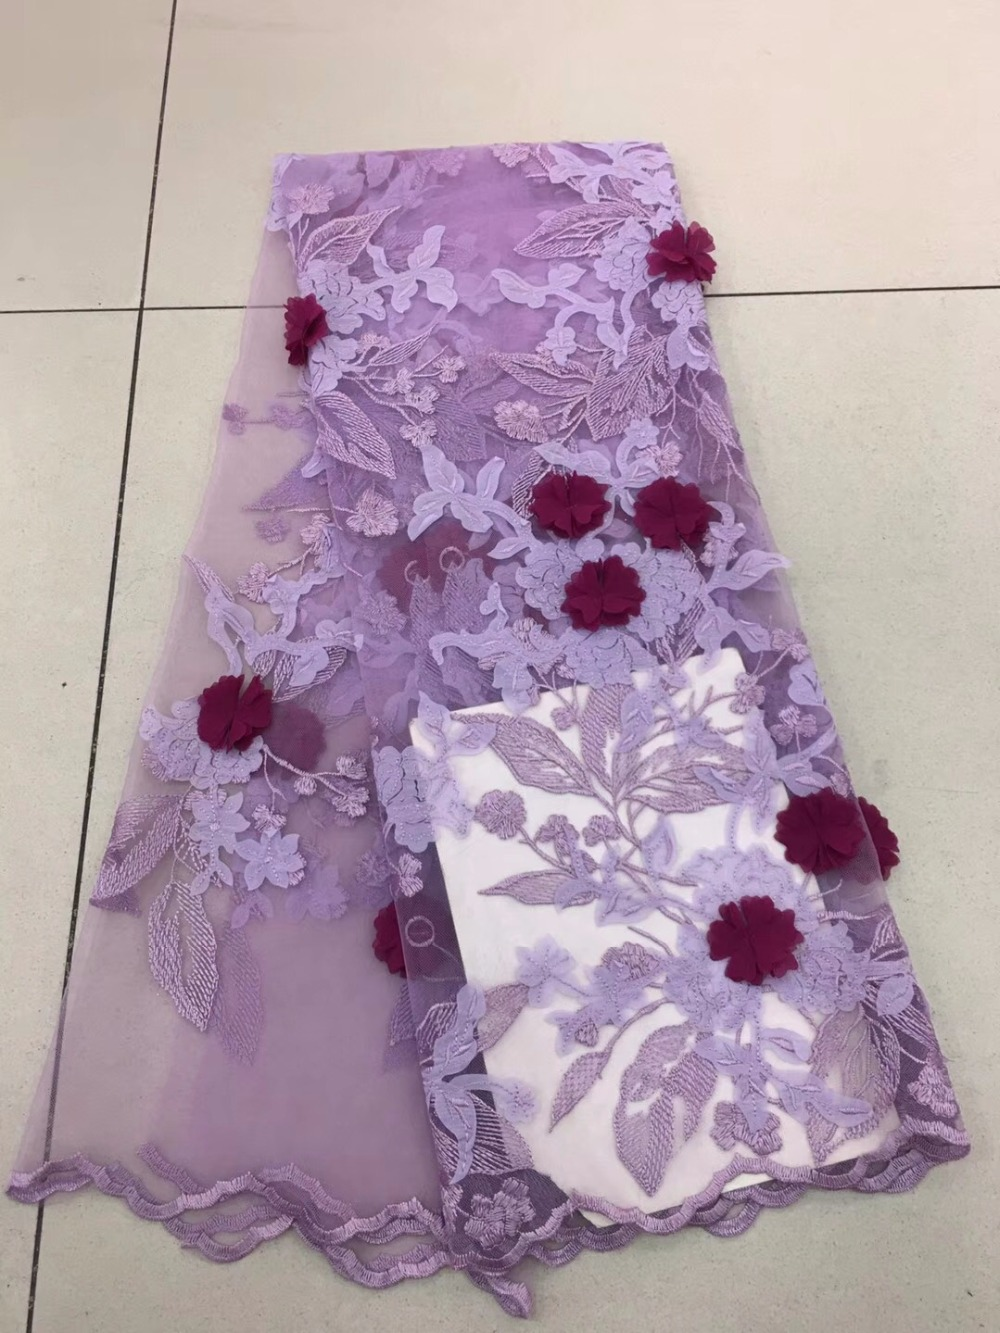 Latest African Laces 2018 Embroidery 3D Flower Fabric High Quality Nigerian LACE Fabrics For WeddingLatest African Laces 2018 Embroidery 3D Flower Fabric High Quality Nigerian LACE Fabrics For Wedding